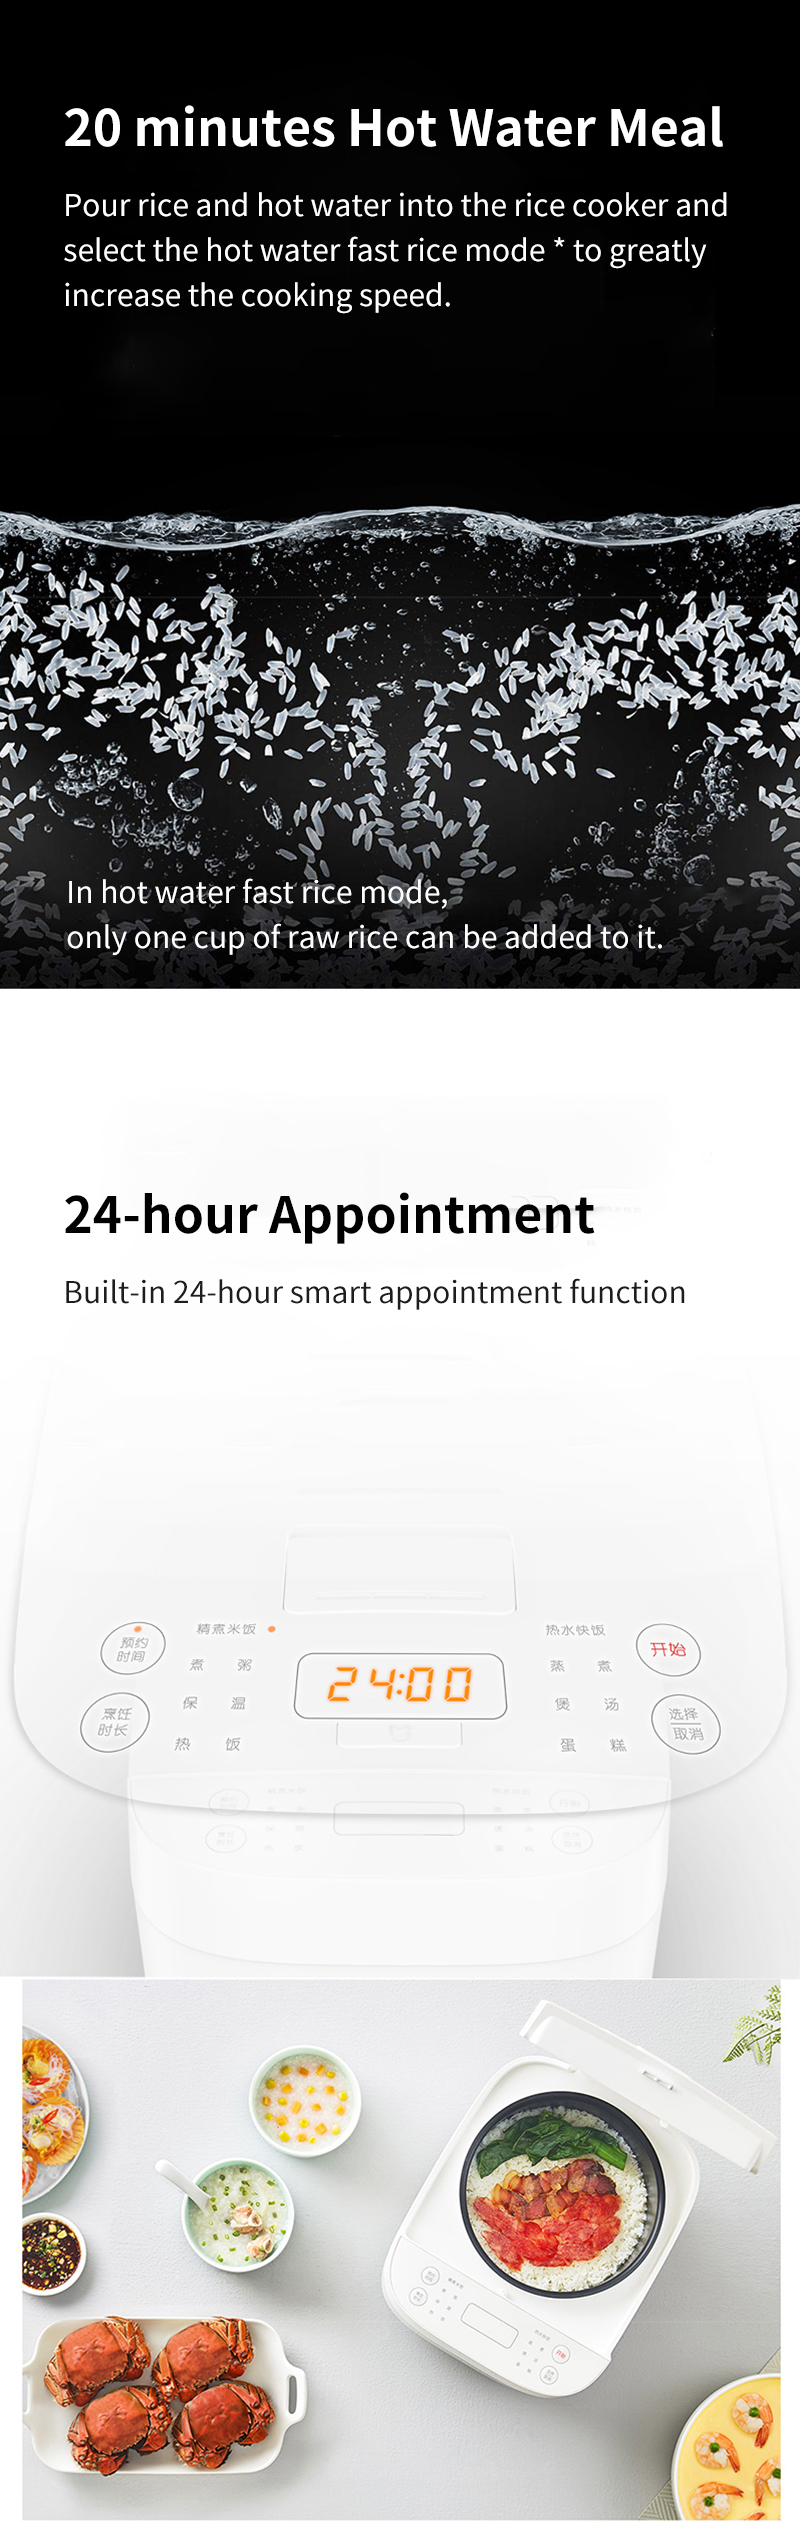 Xiaomi Mijia 3L Capacity 650W Rice Cooker C1 24 Cooking Modes 24-hour Appointment 4-hour cooking